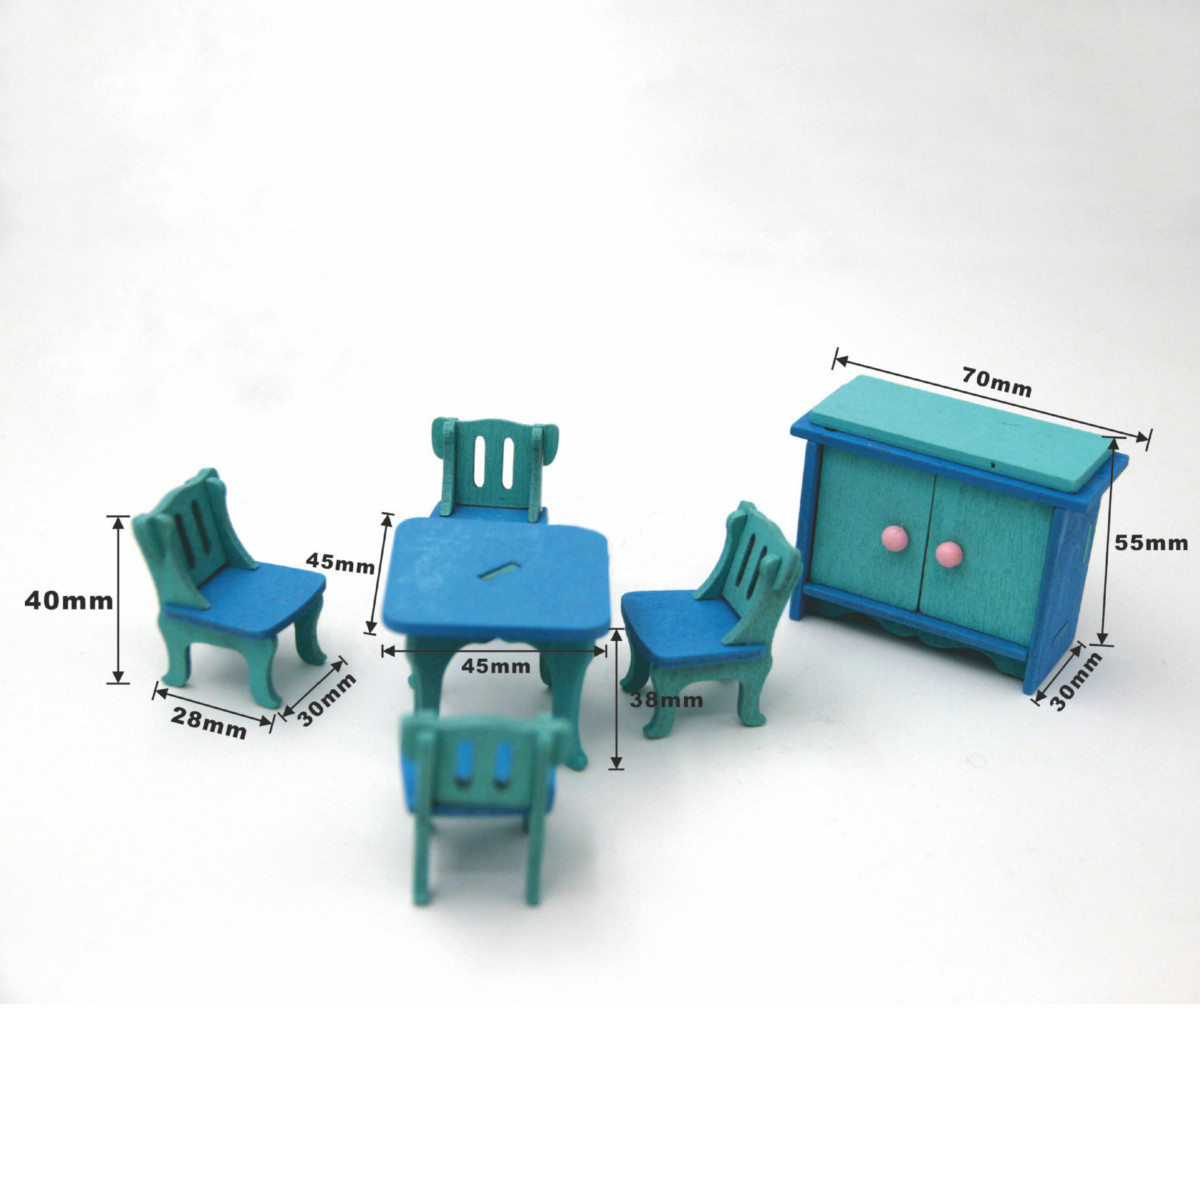 1 set/6pcs Baby Wooden Dollhouse Furniture Dolls House Miniature Child Play Toys Gifts